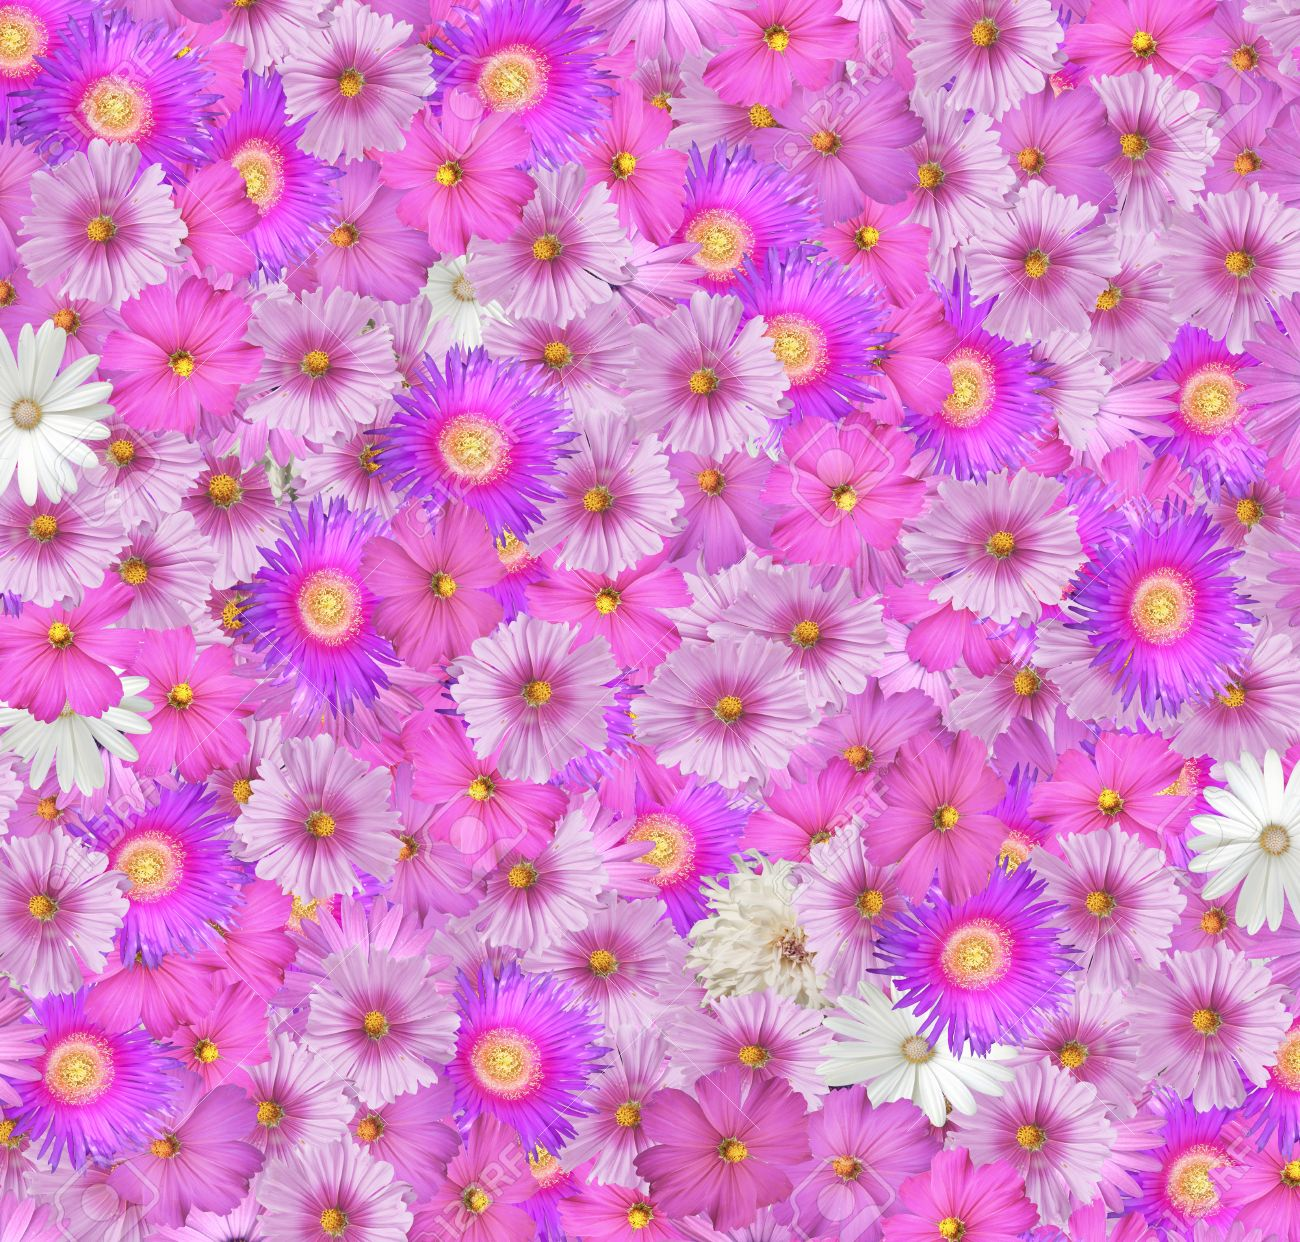 Pretty background of pink and white flowers stock photo picture and pretty background of pink and white flowers stock photo 12726393 voltagebd Gallery